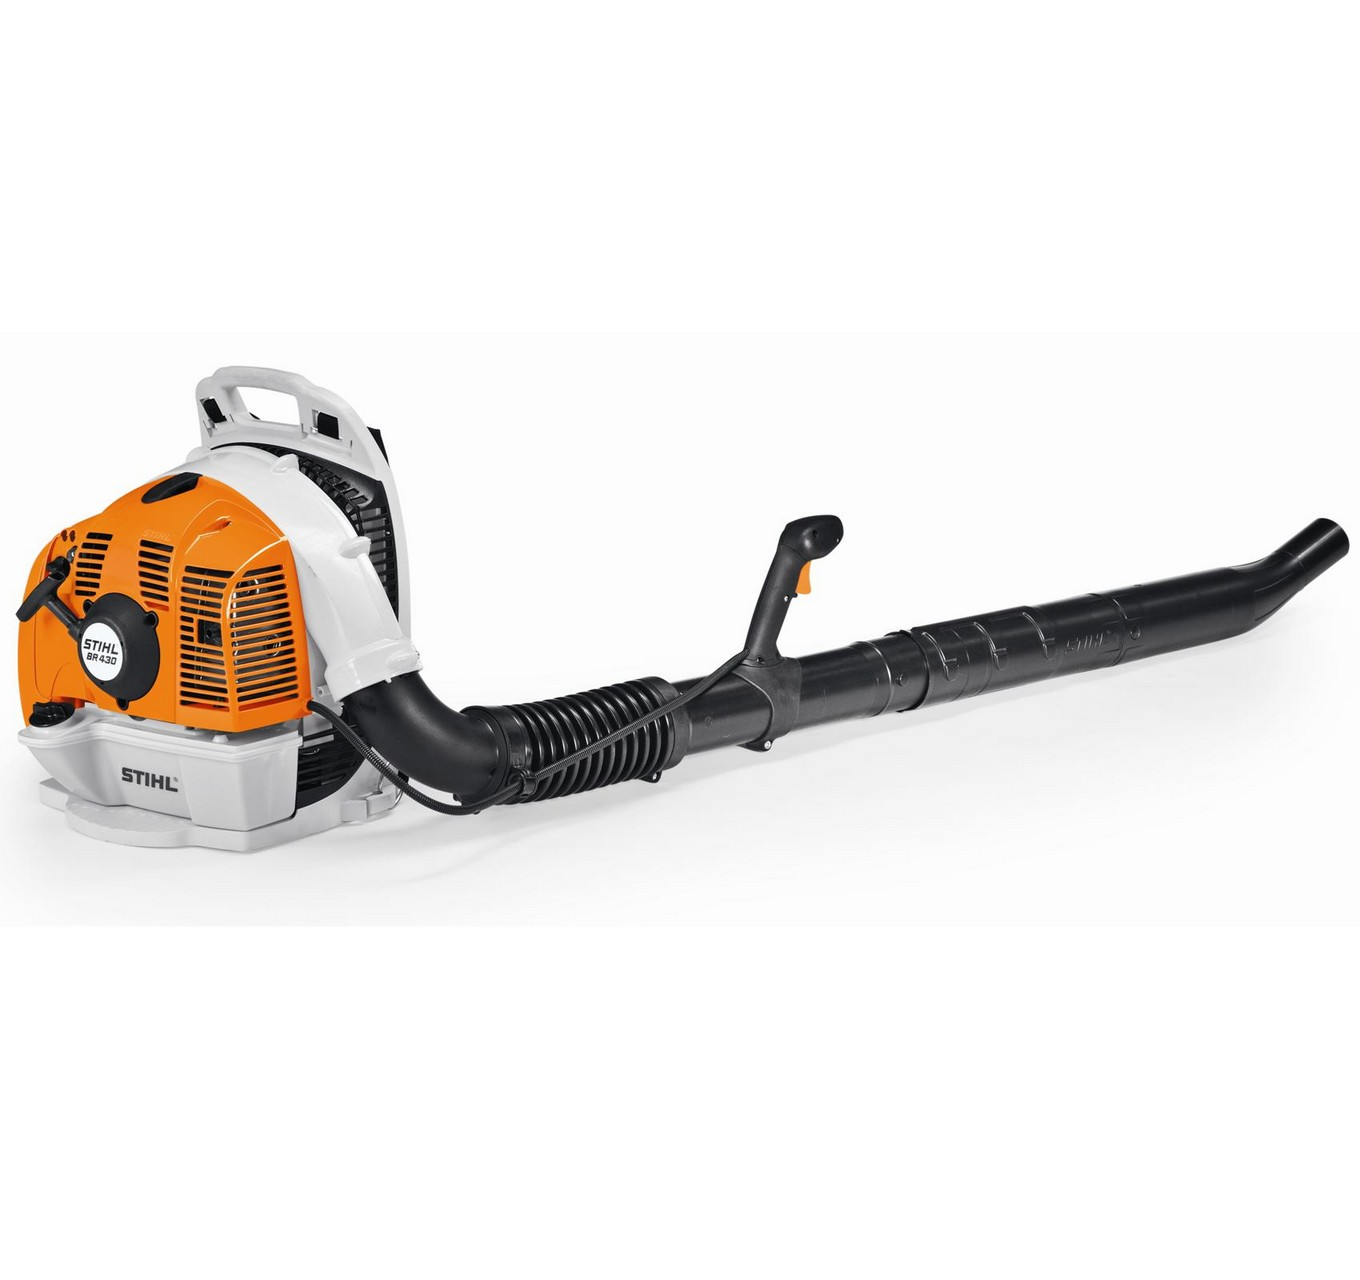 BR 430 Backpack Blower